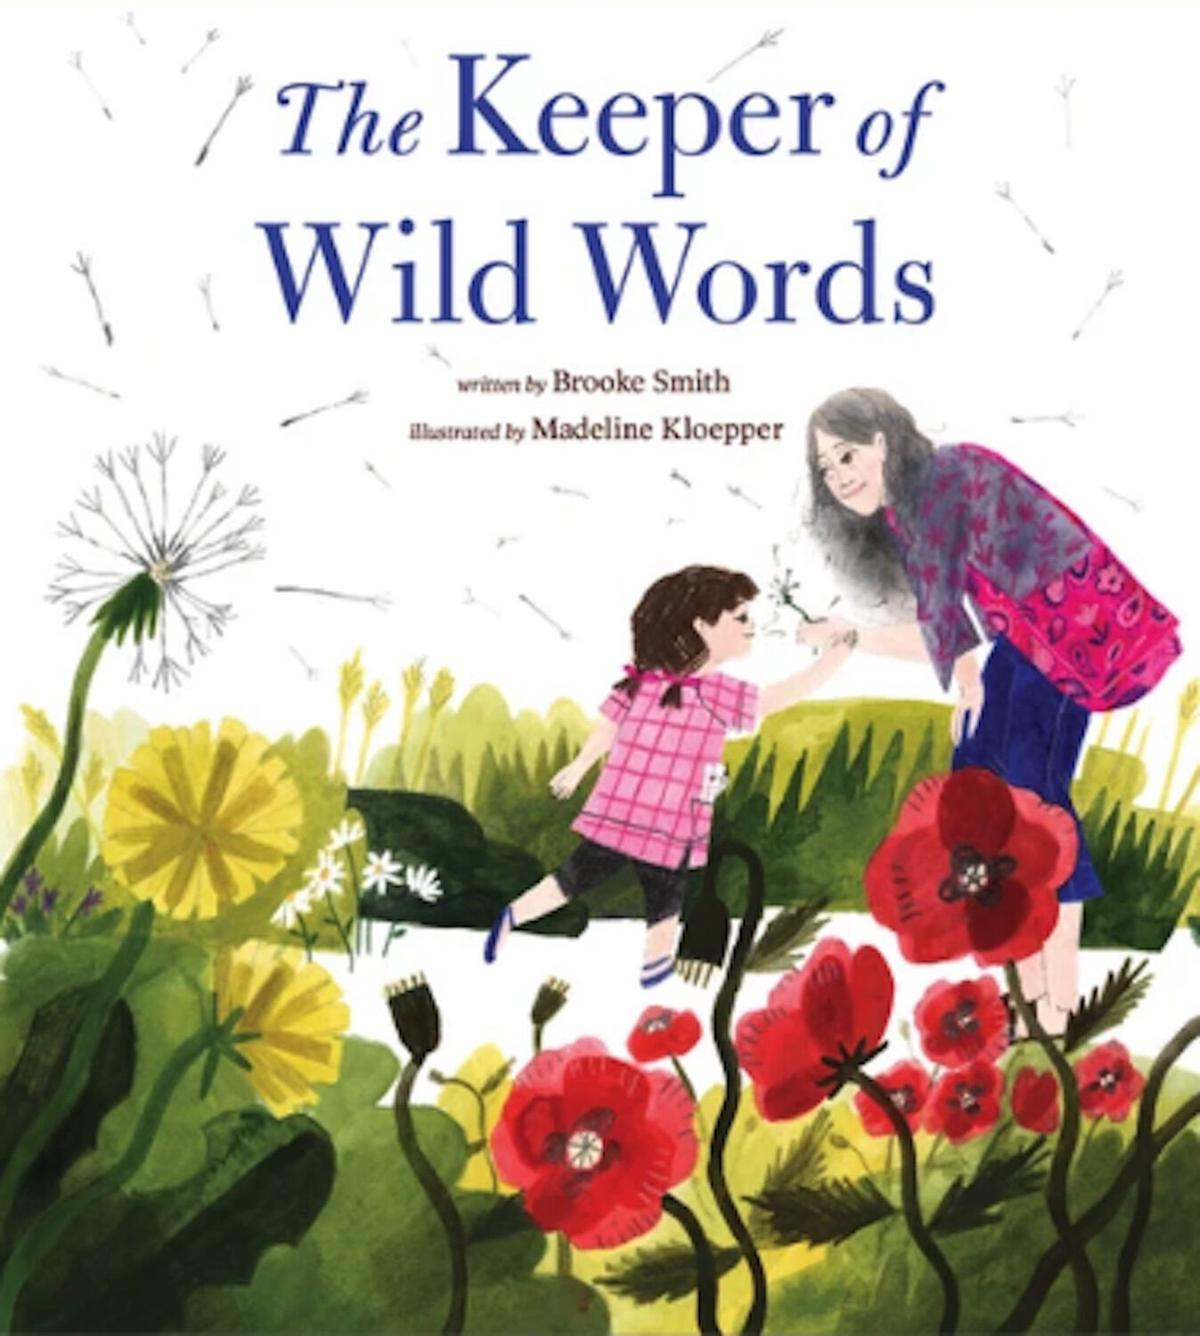 'The Keeper of Wild Words'